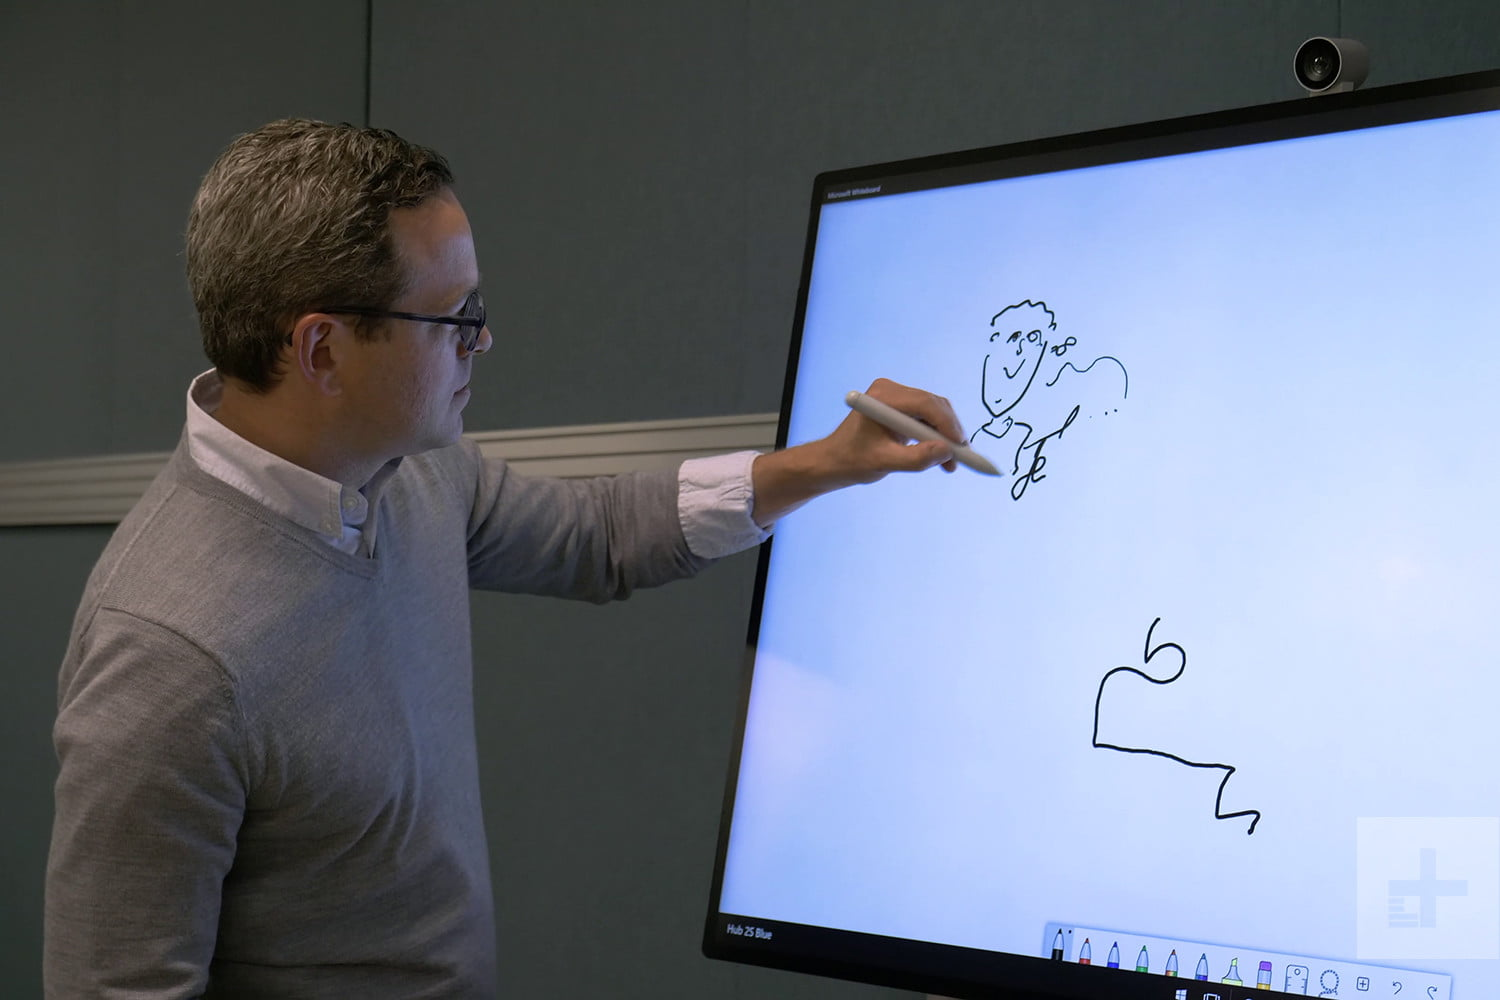 revision surfacehub 2s microsofthub2s handson 2